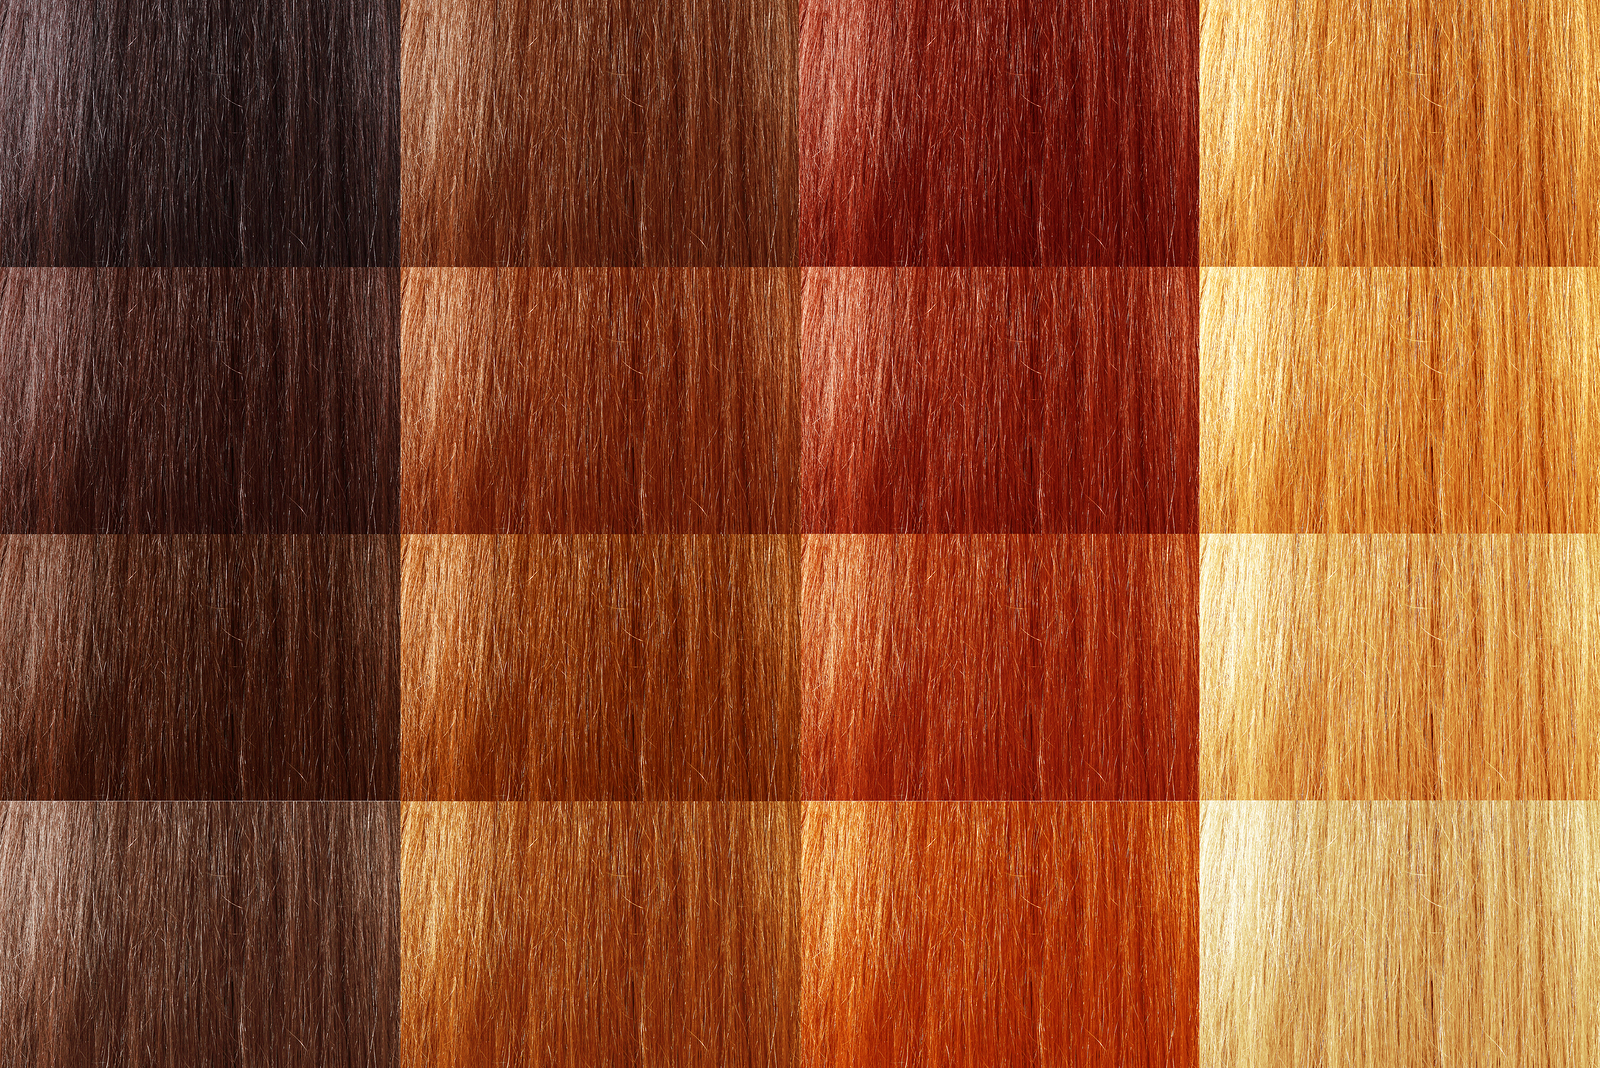 How To Pick My Best Hair Color